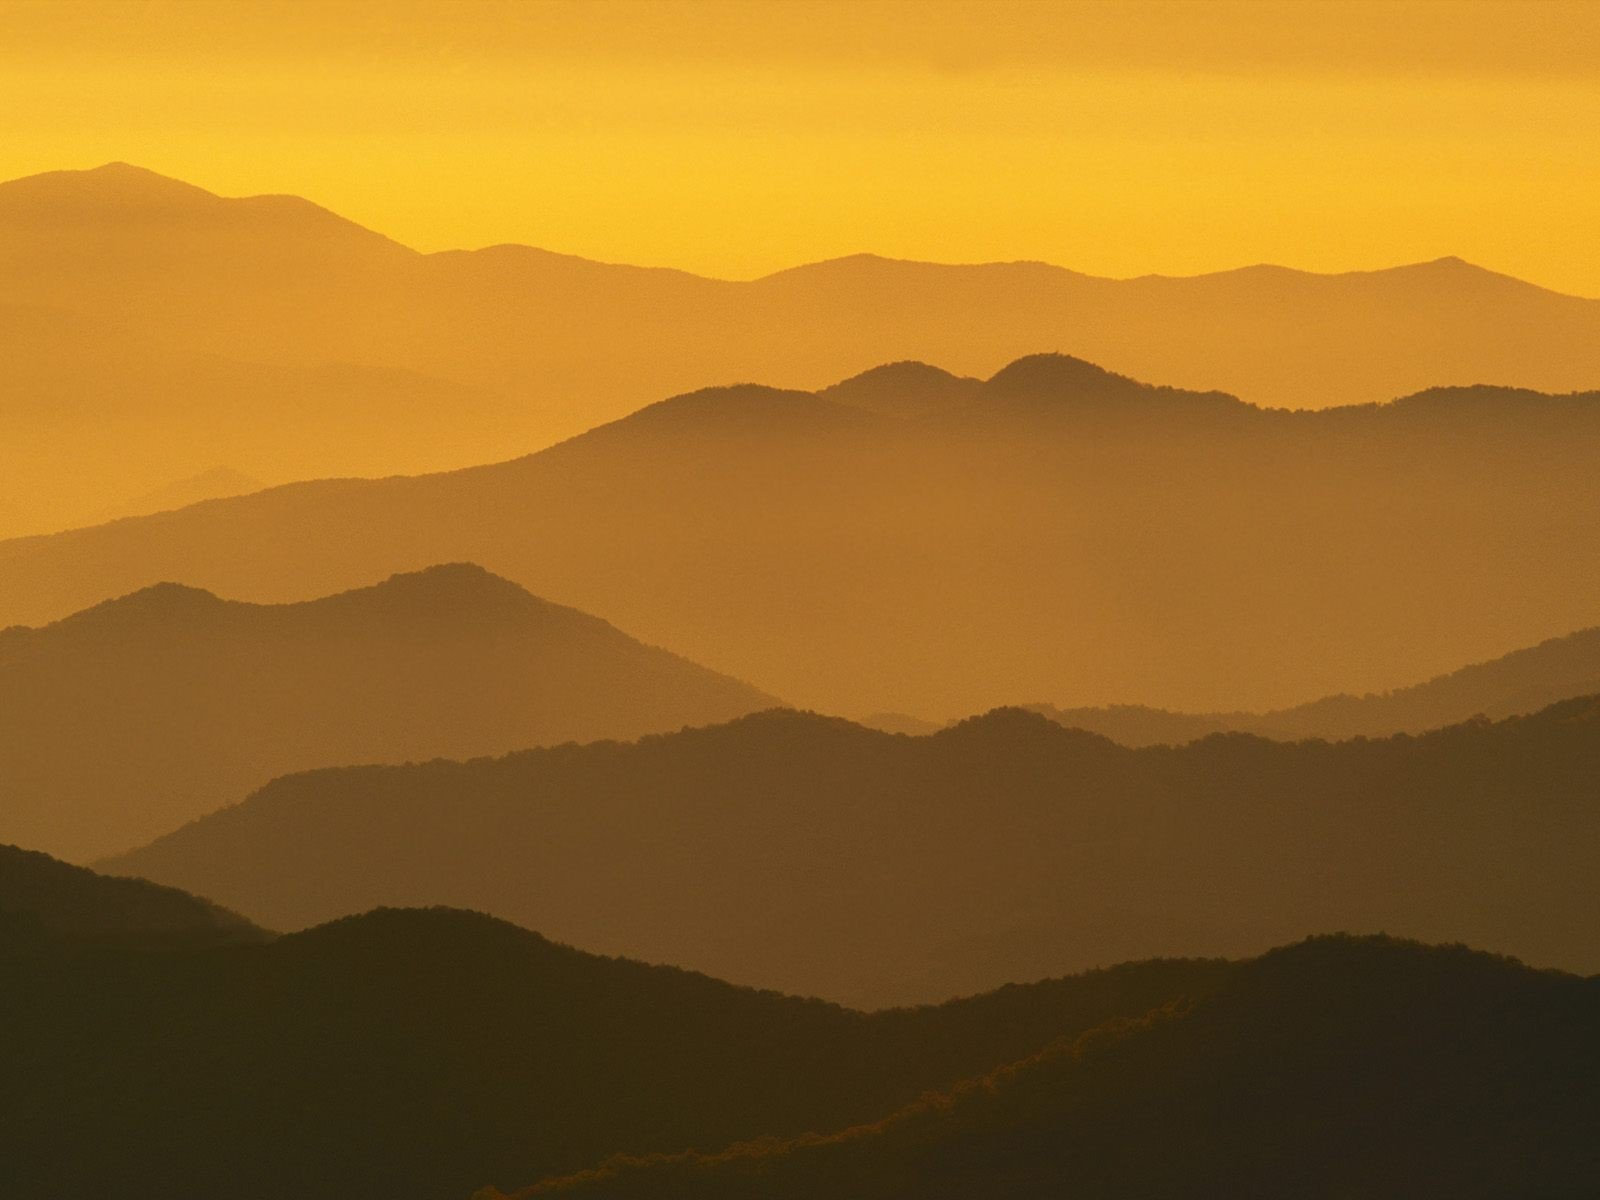 Mountains silhouettes mist sunlight dome North Carolina wallpaper.